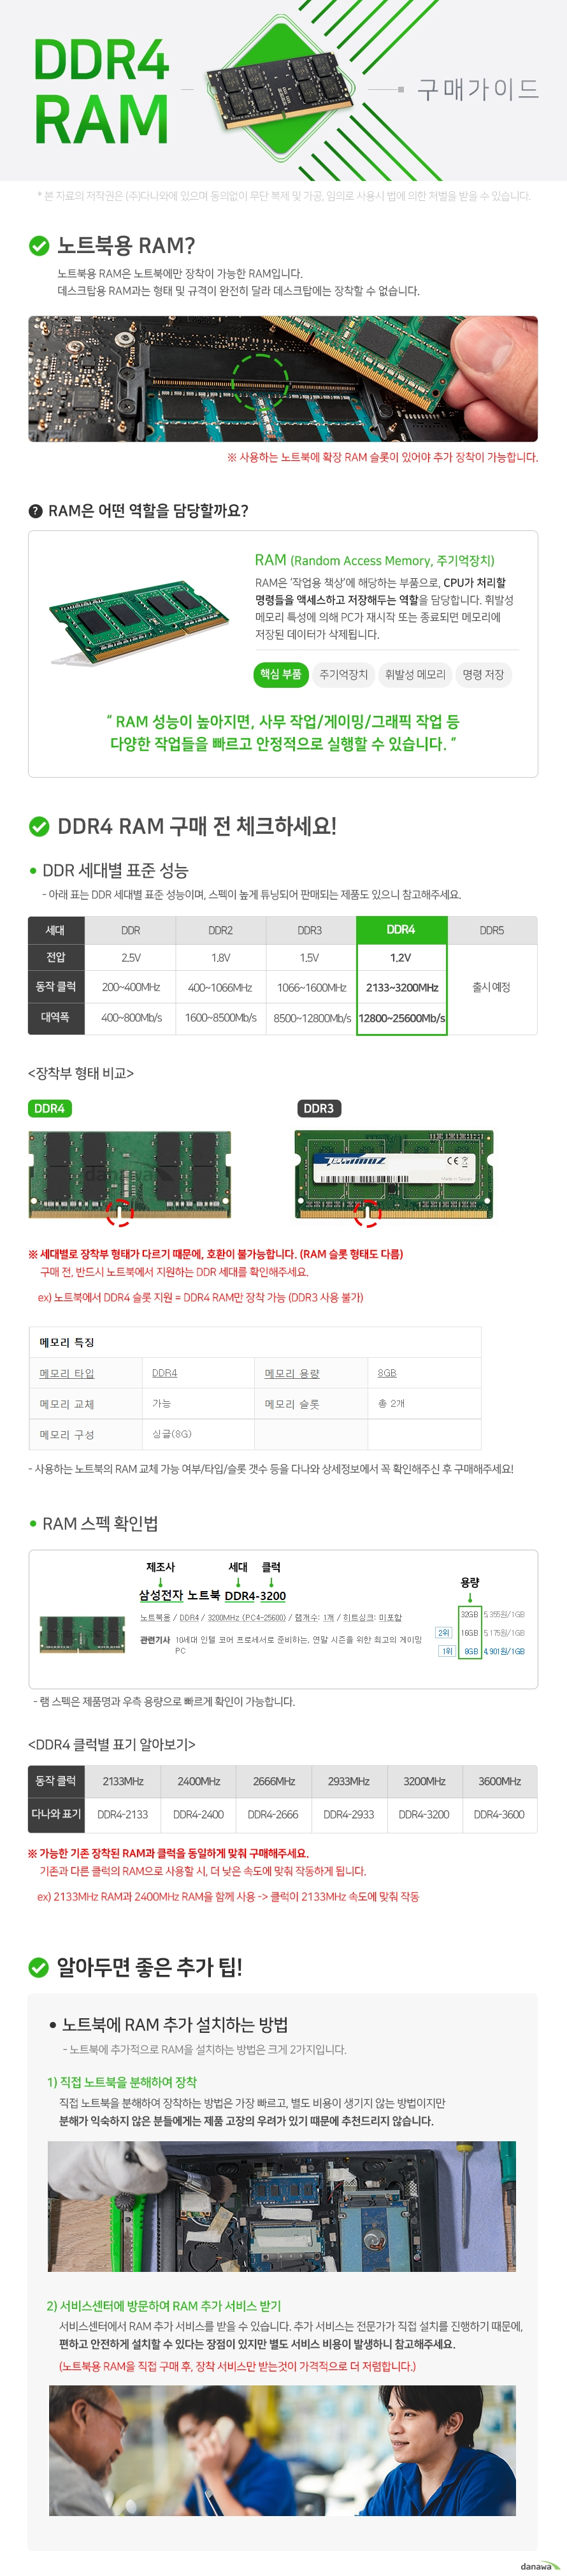 TeamGroup 노트북 DDR4-2666 CL19 ZEUS (32GB)